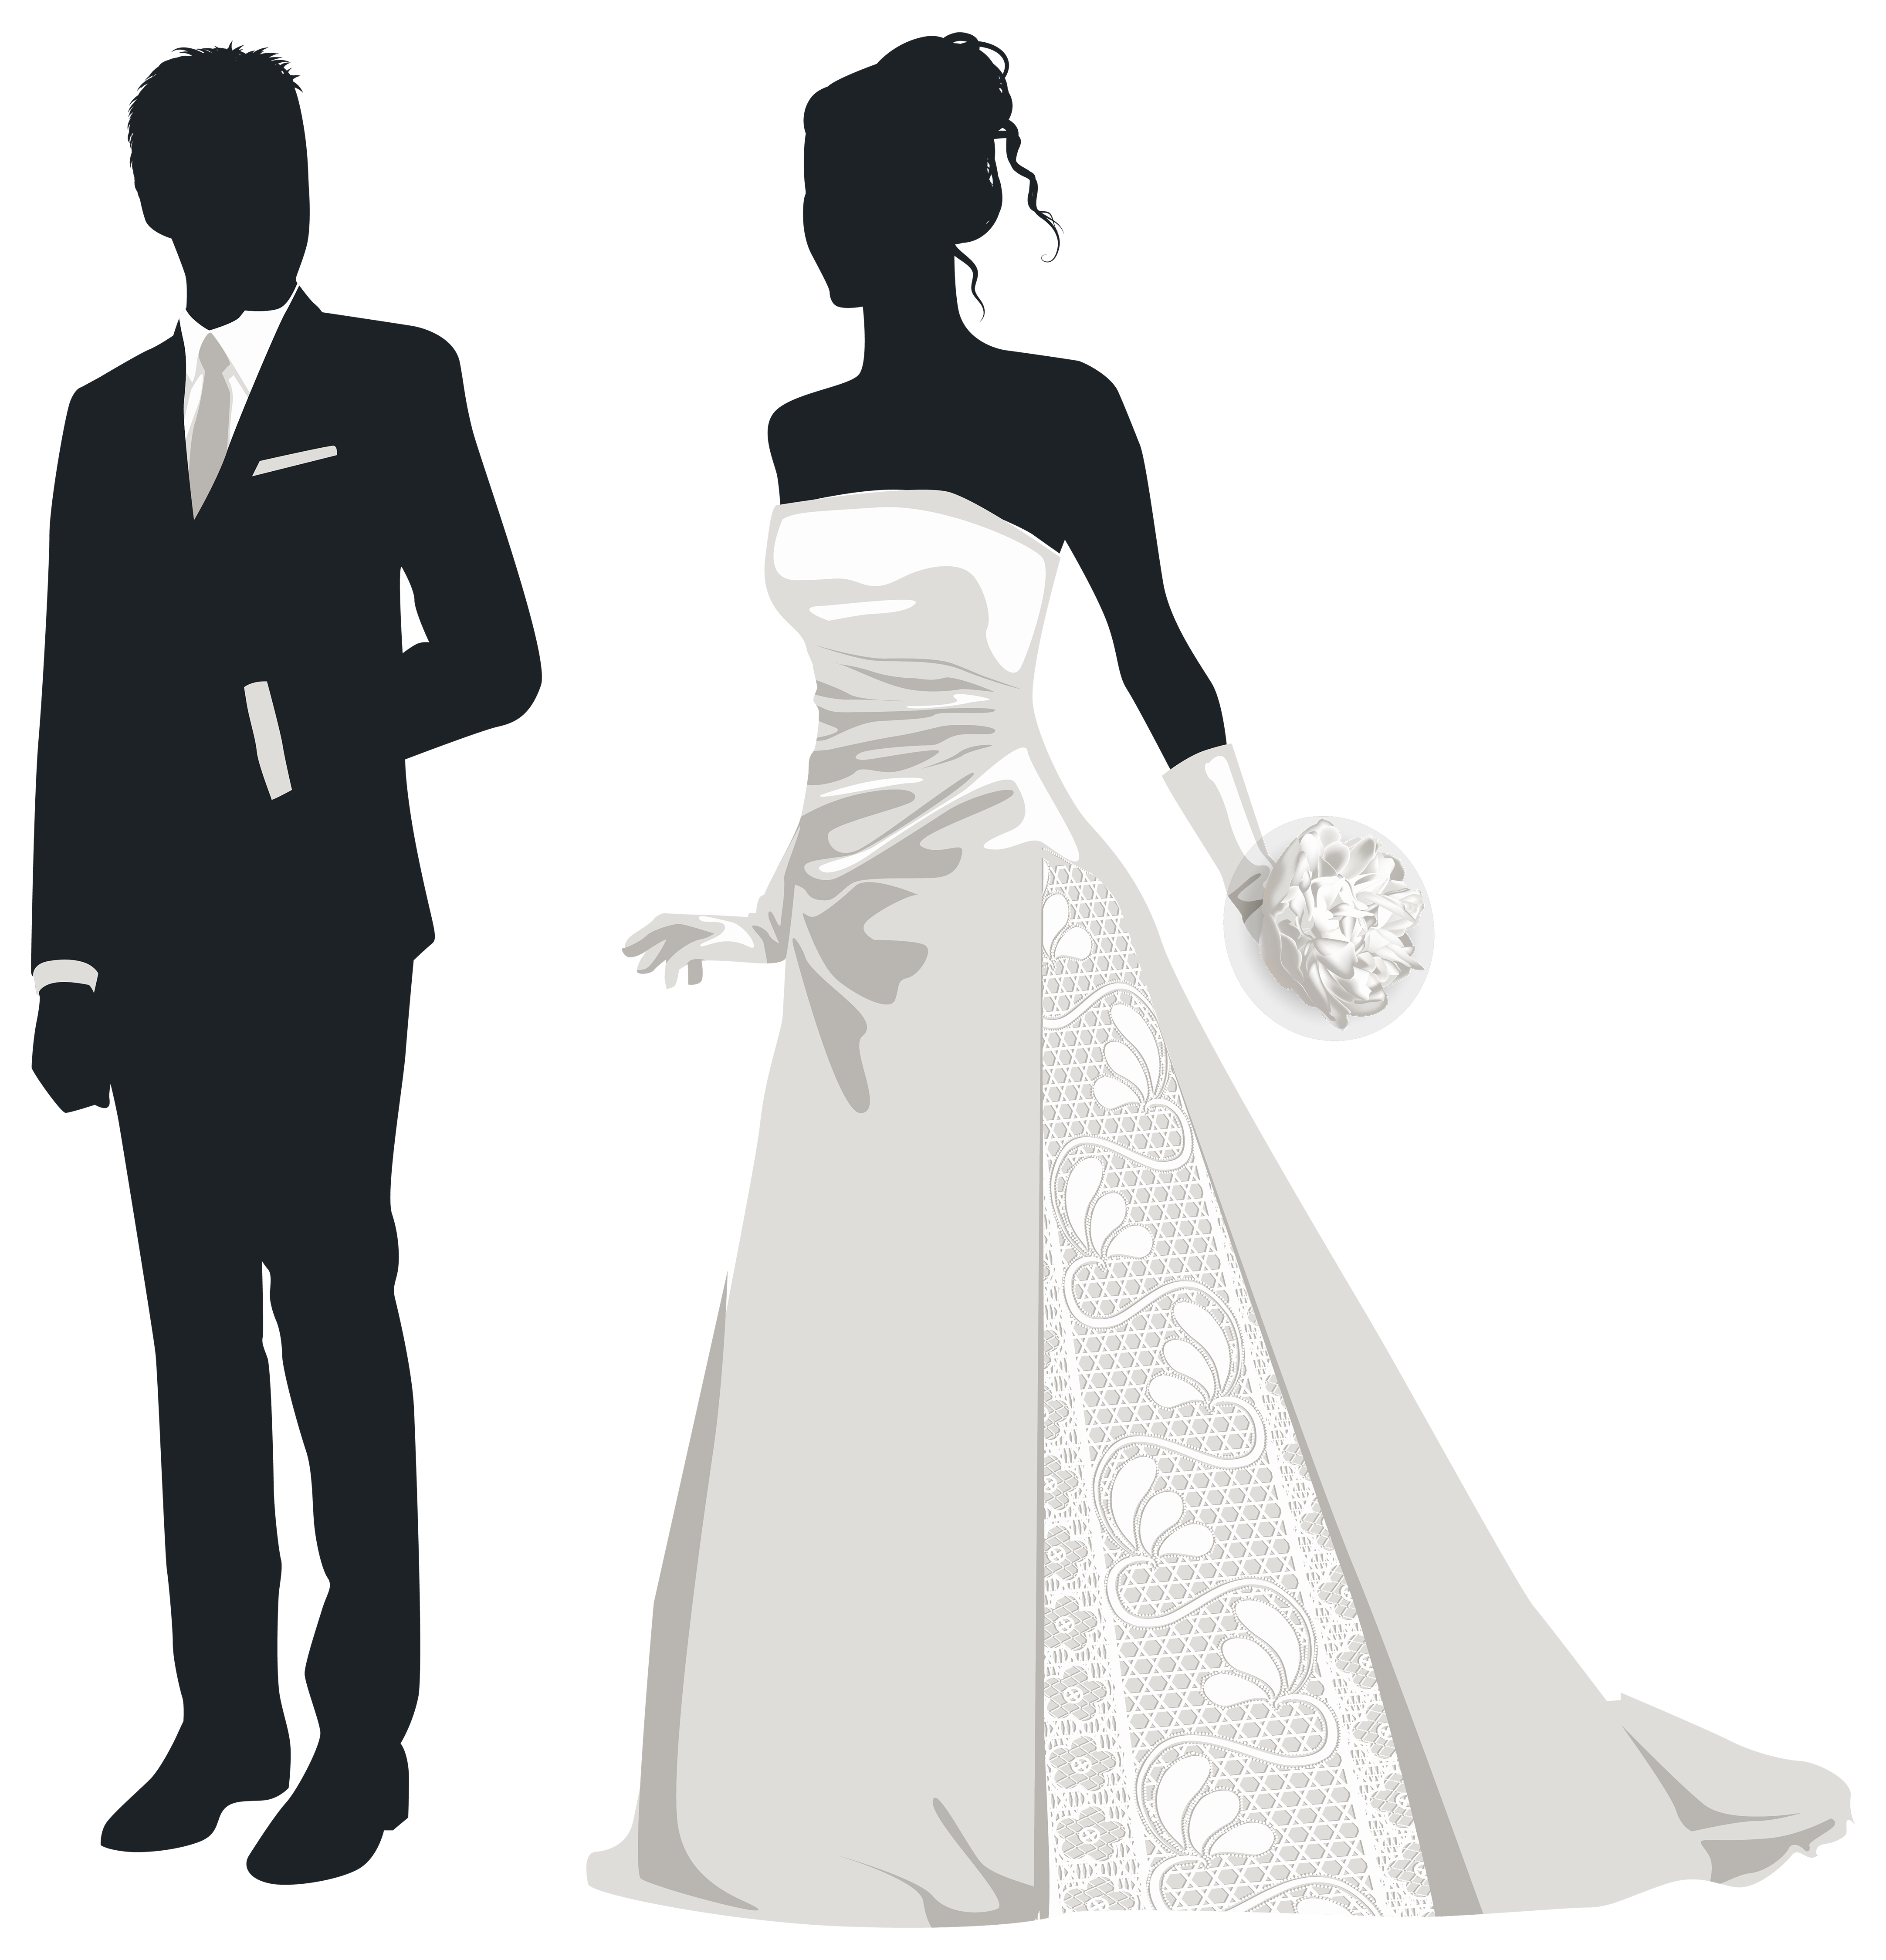 Groom clipart. Bride and silhouettes png